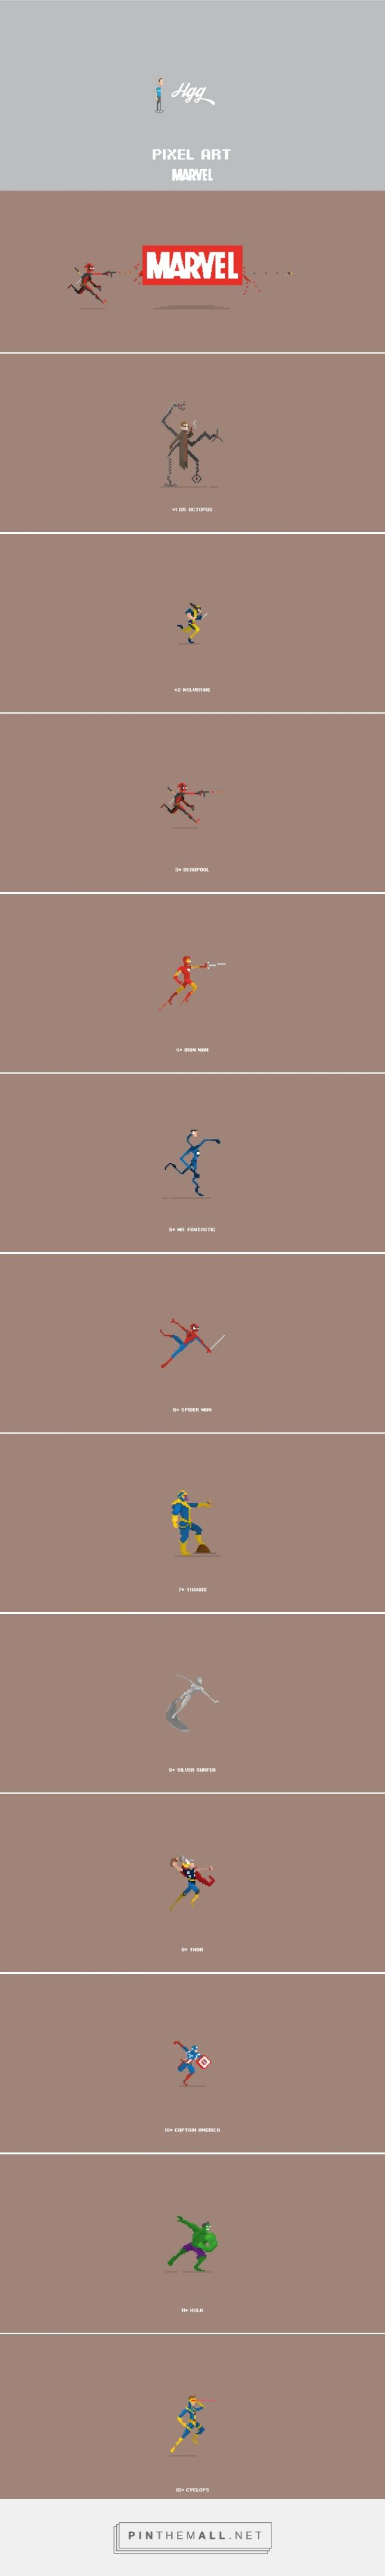 Pixel Art_Marvel Characters by Hgg